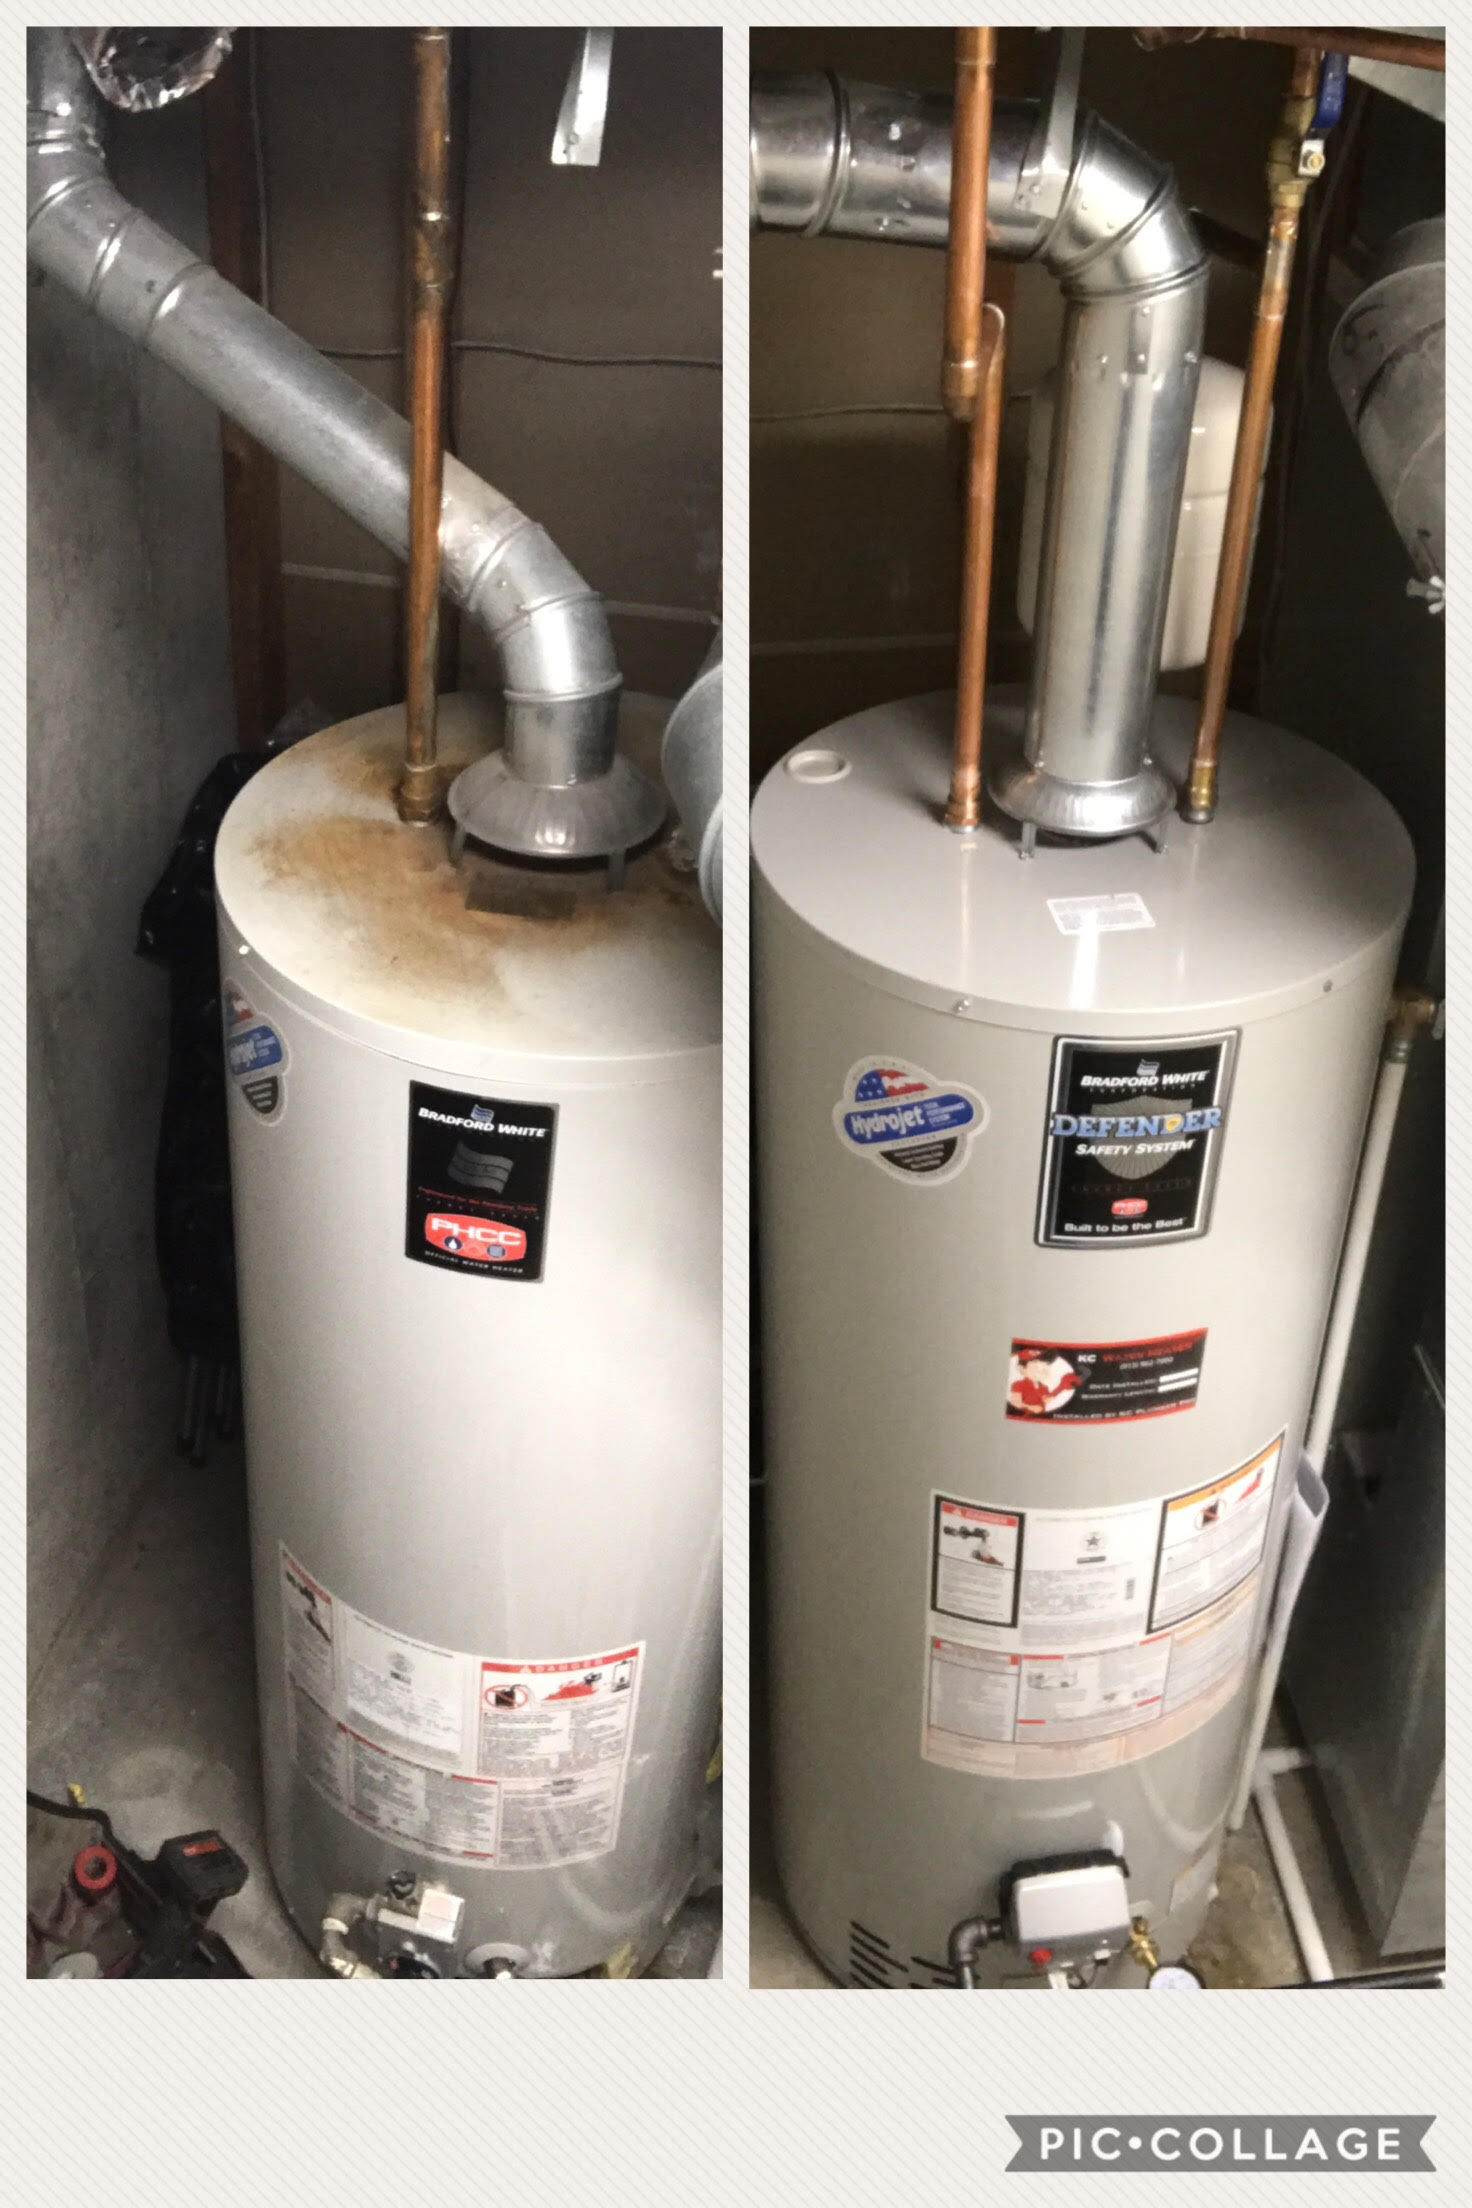 Bradford Water Heater >> Backdrafting Water Heaters - Water Heaters Installed by Licensed Plumber